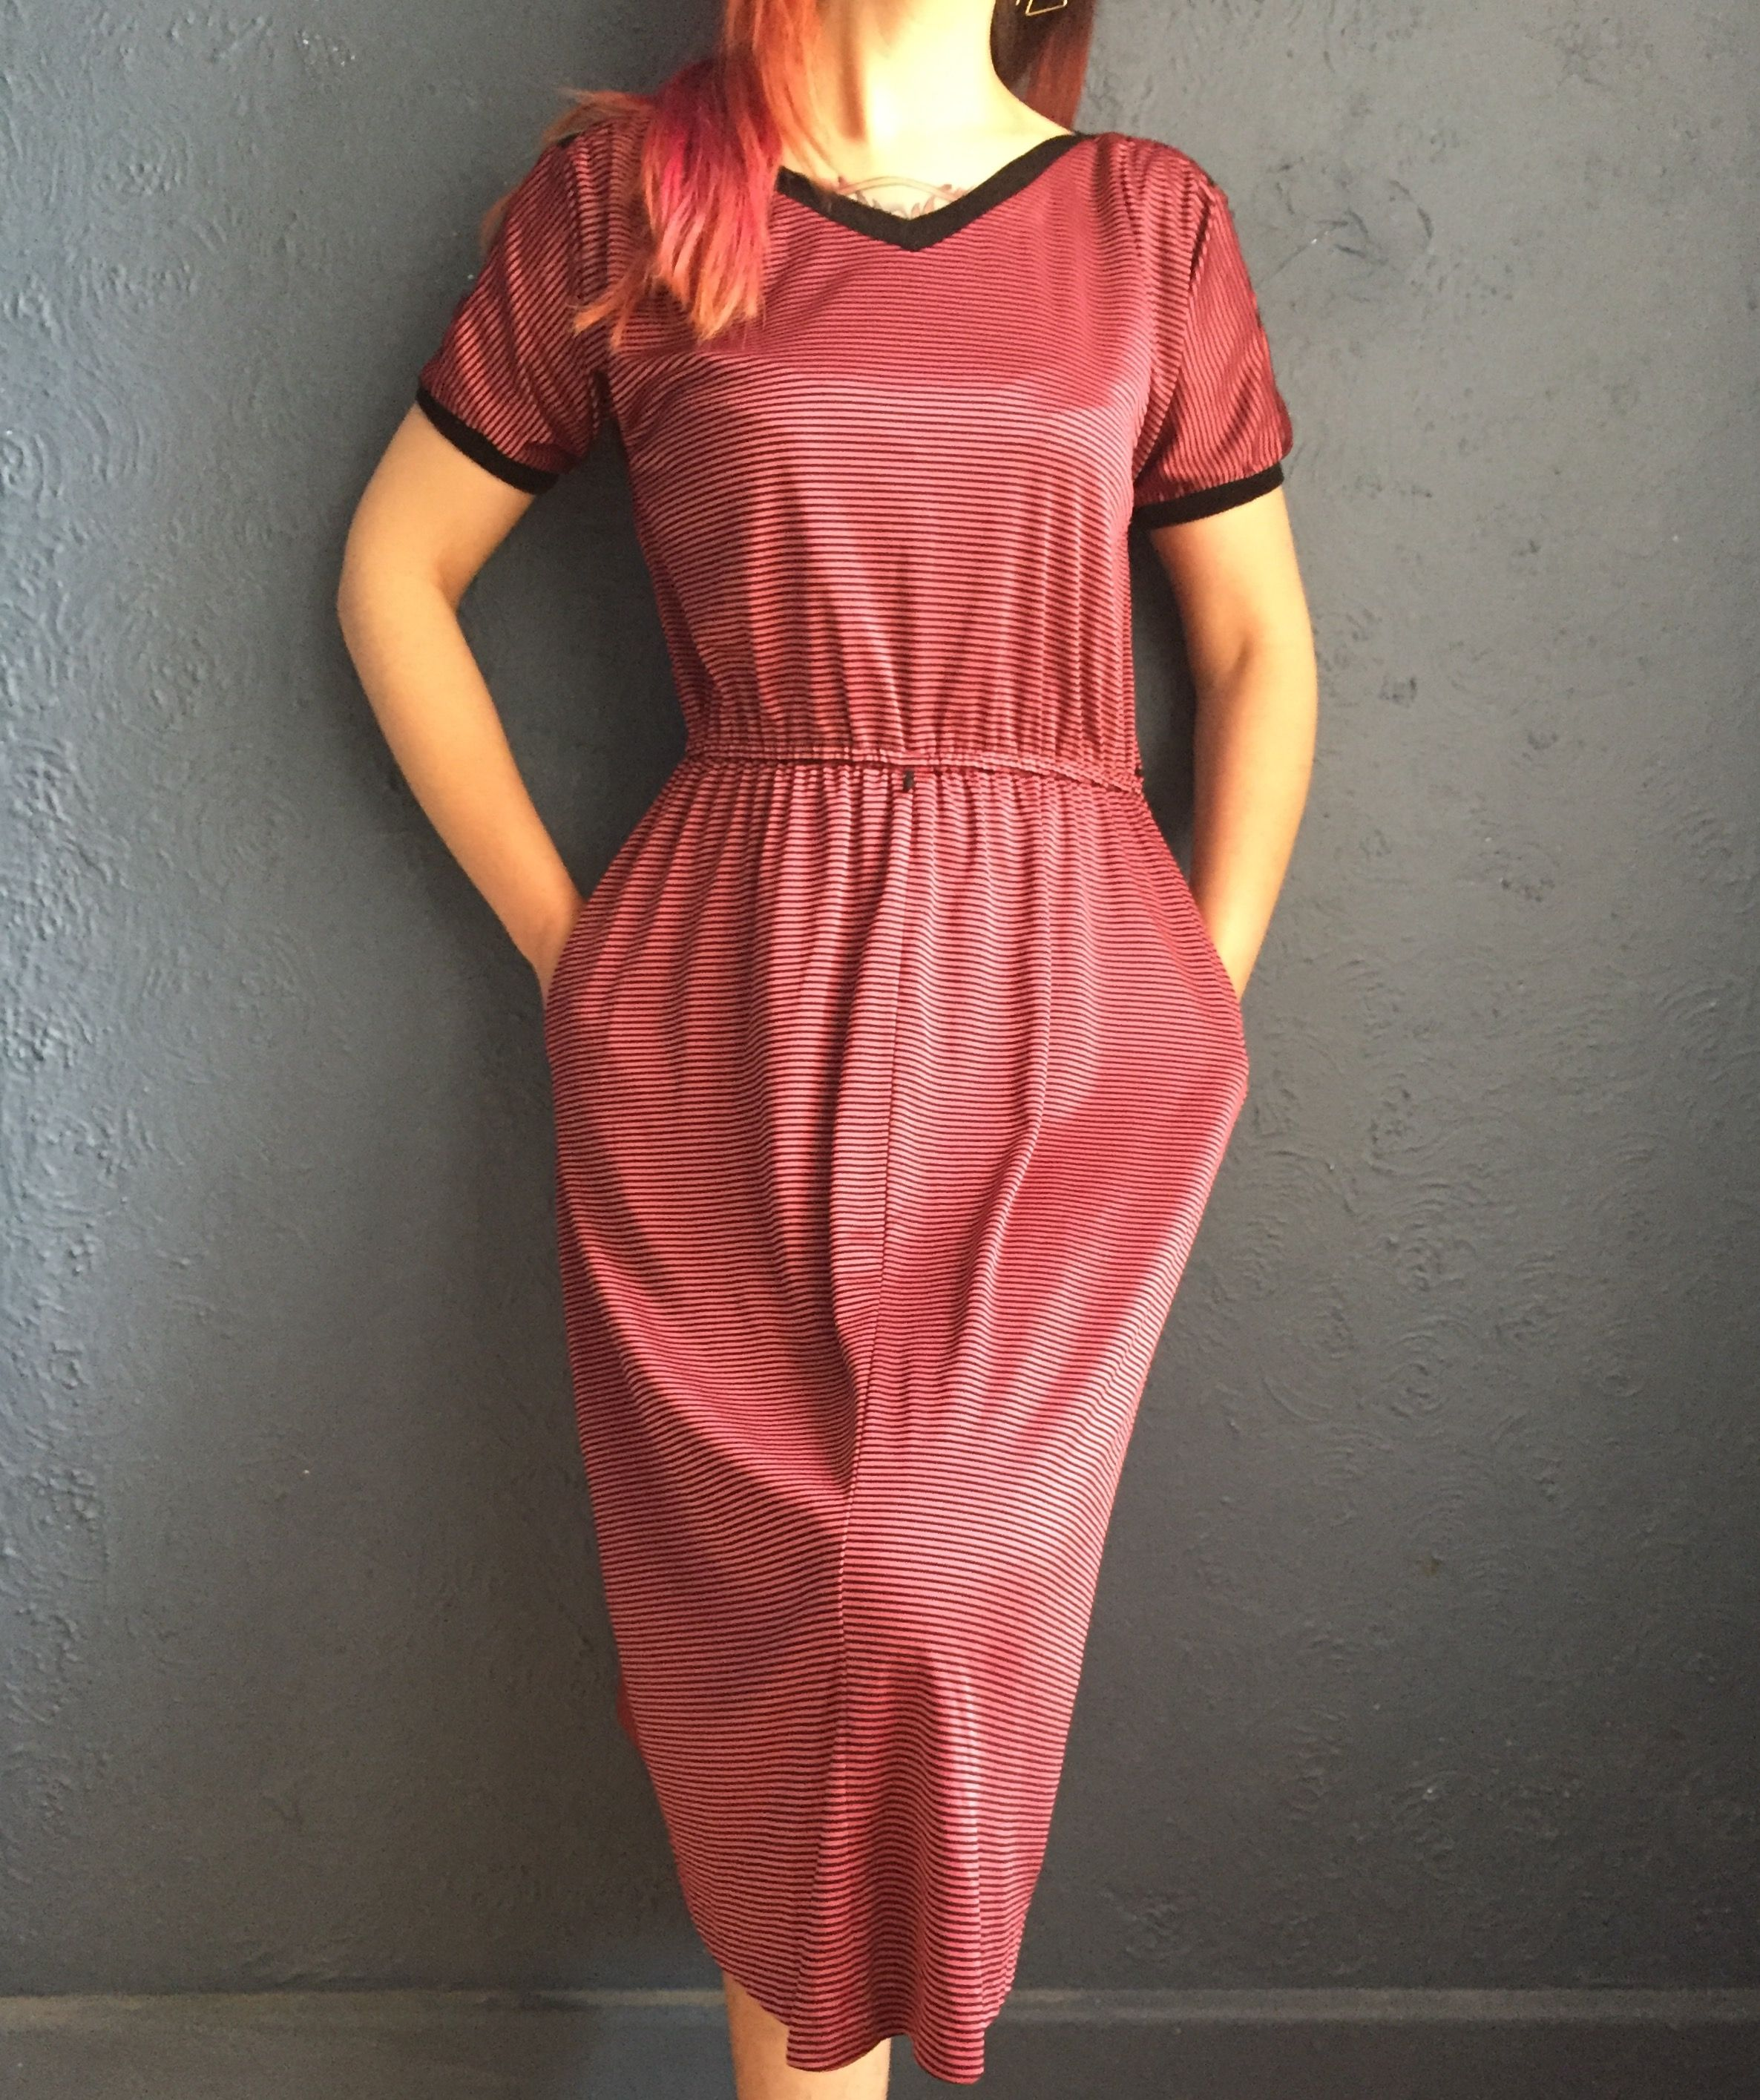 Vintage s cute and comfortable casual pink u black striped dress